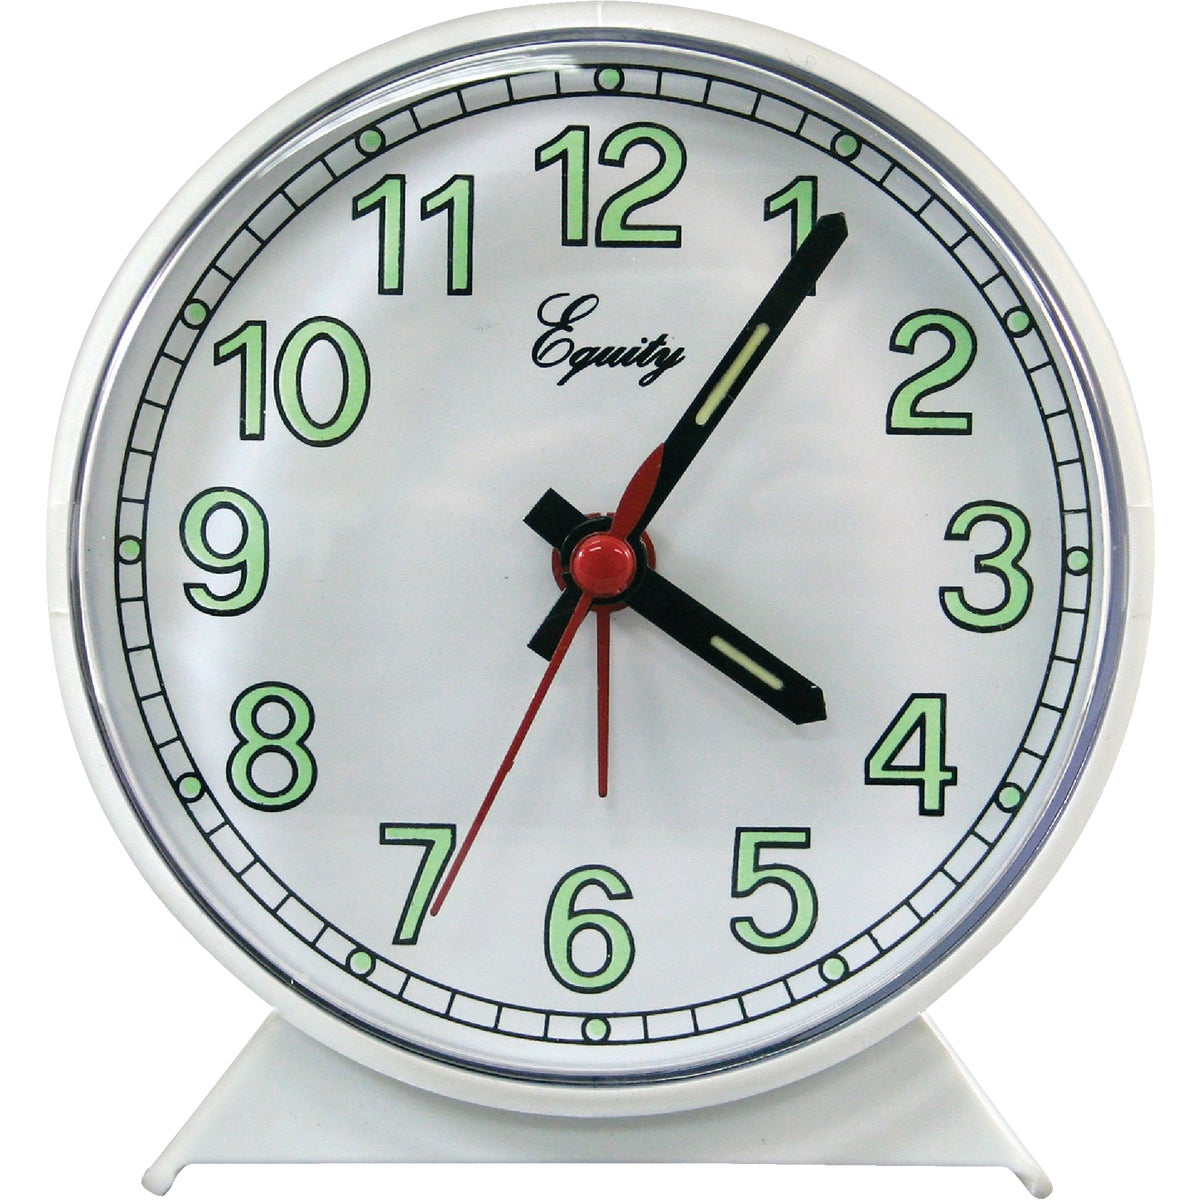 KEYWIND ALARM CLOCK - 2056AT by Geneva Clock Company